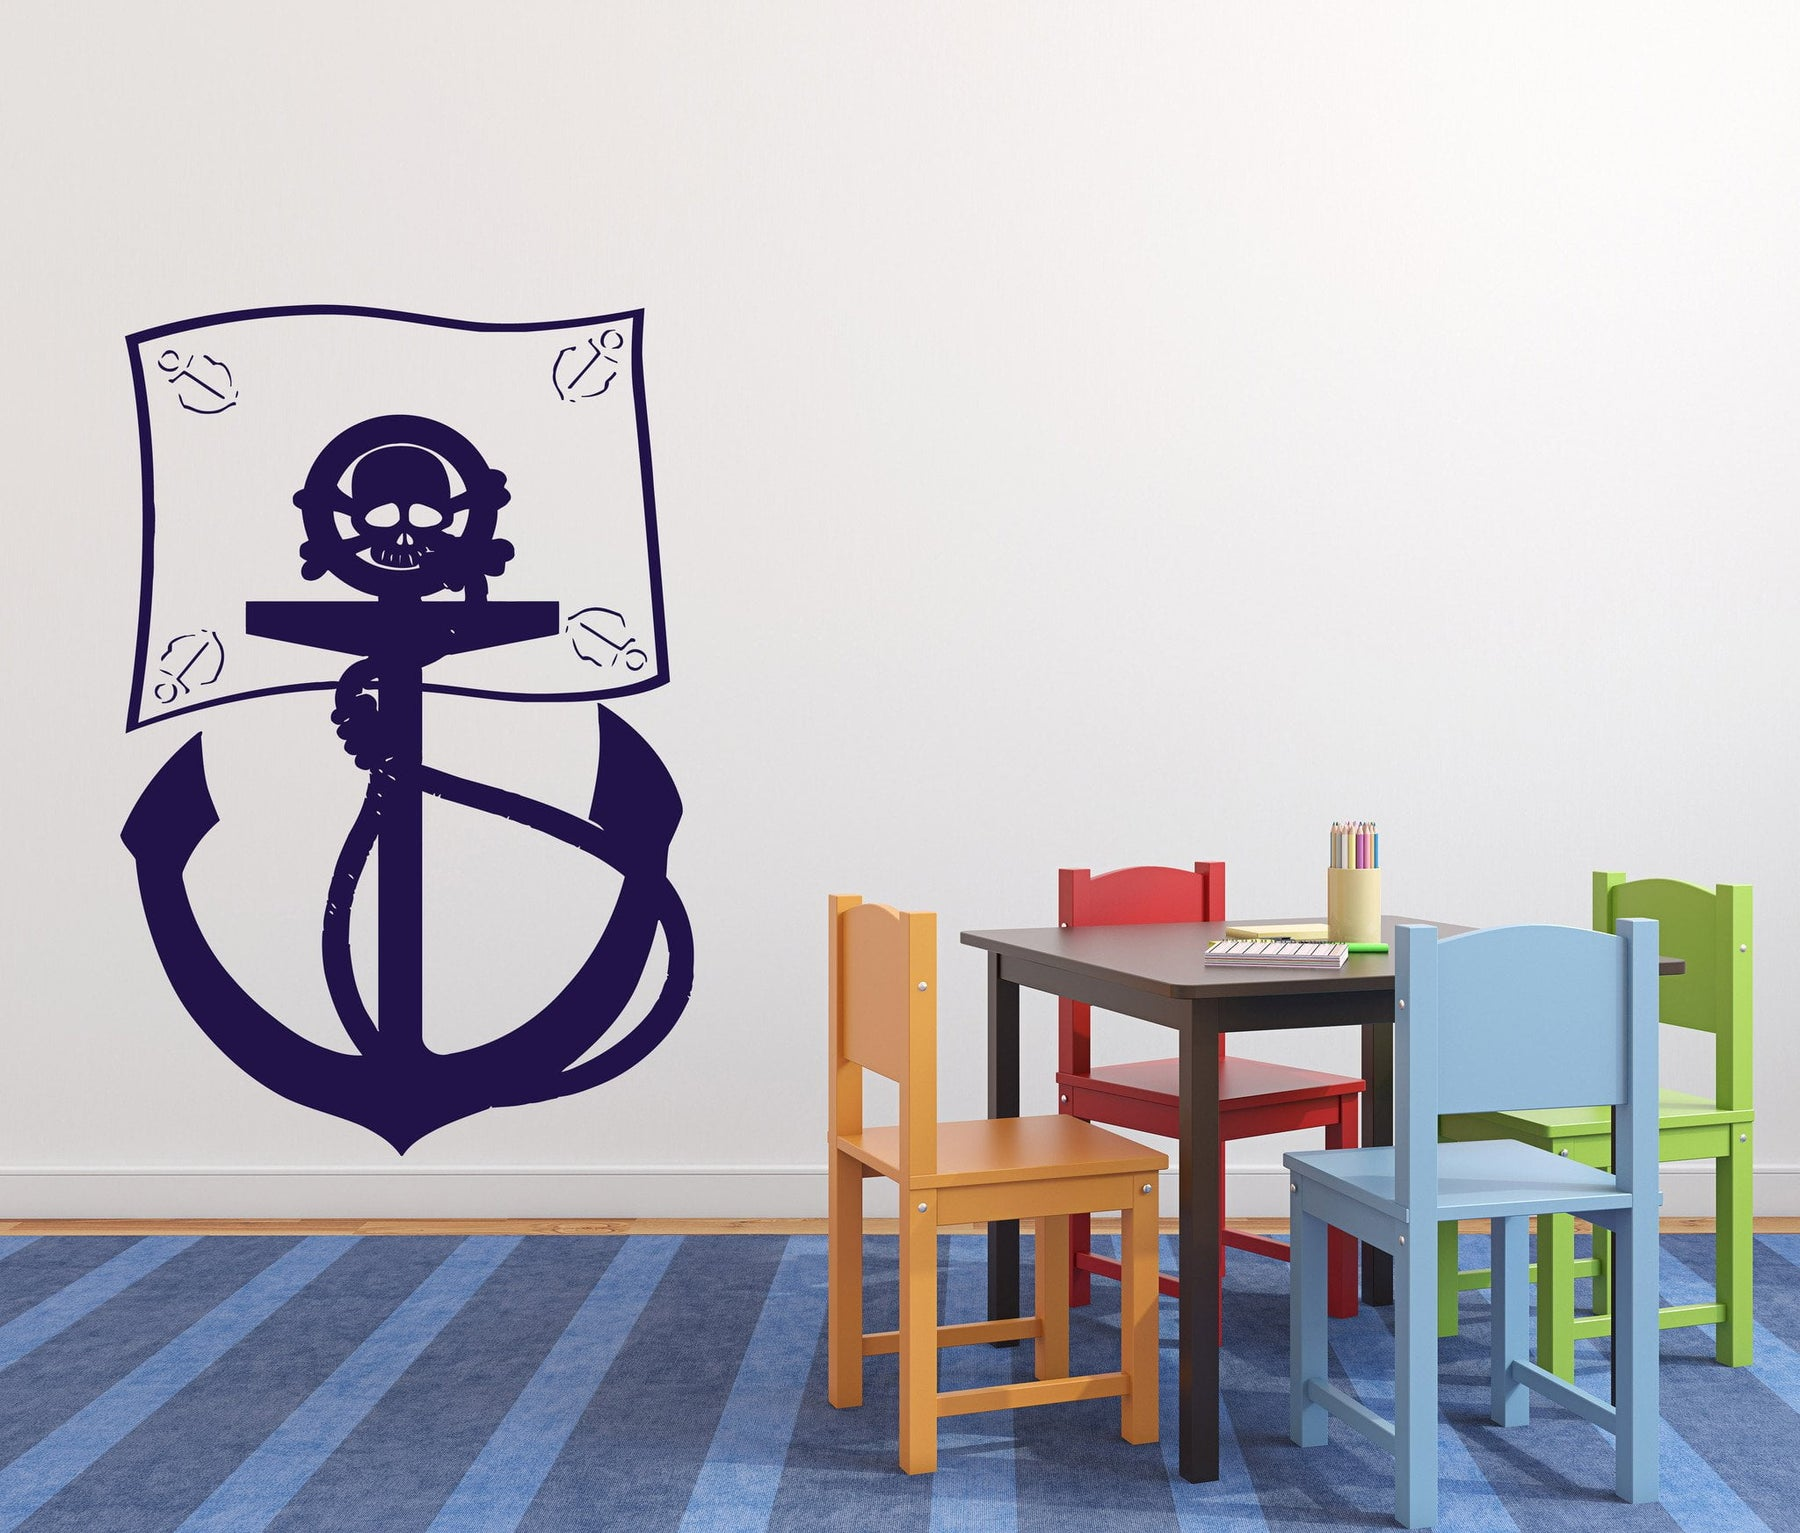 Vinyl Decal Сartoon Wall Sticker Pirate Flag Sea Bandits Anchor Skull Bones Unique Gift (n389)